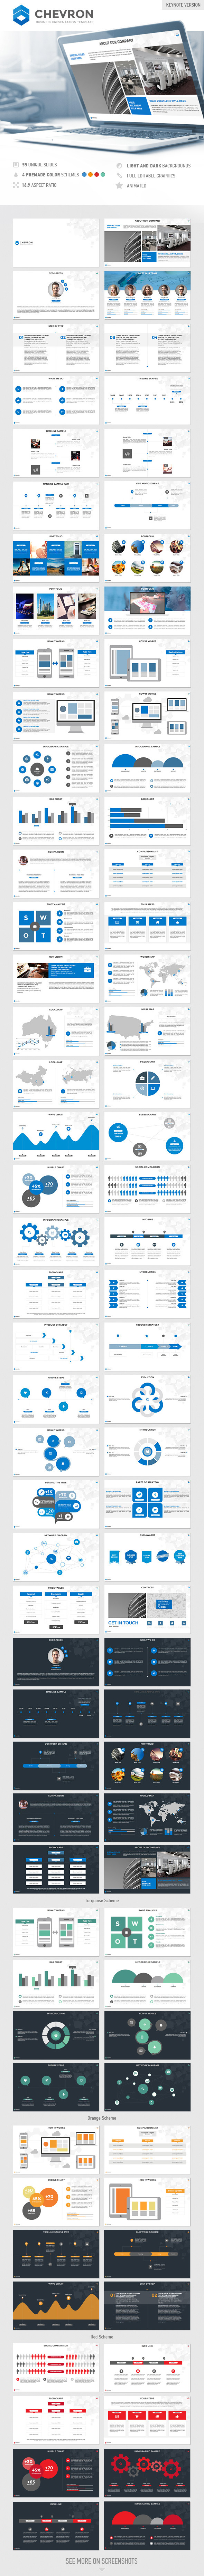 Chevron Keynote Presentation Template - Business Keynote Templates